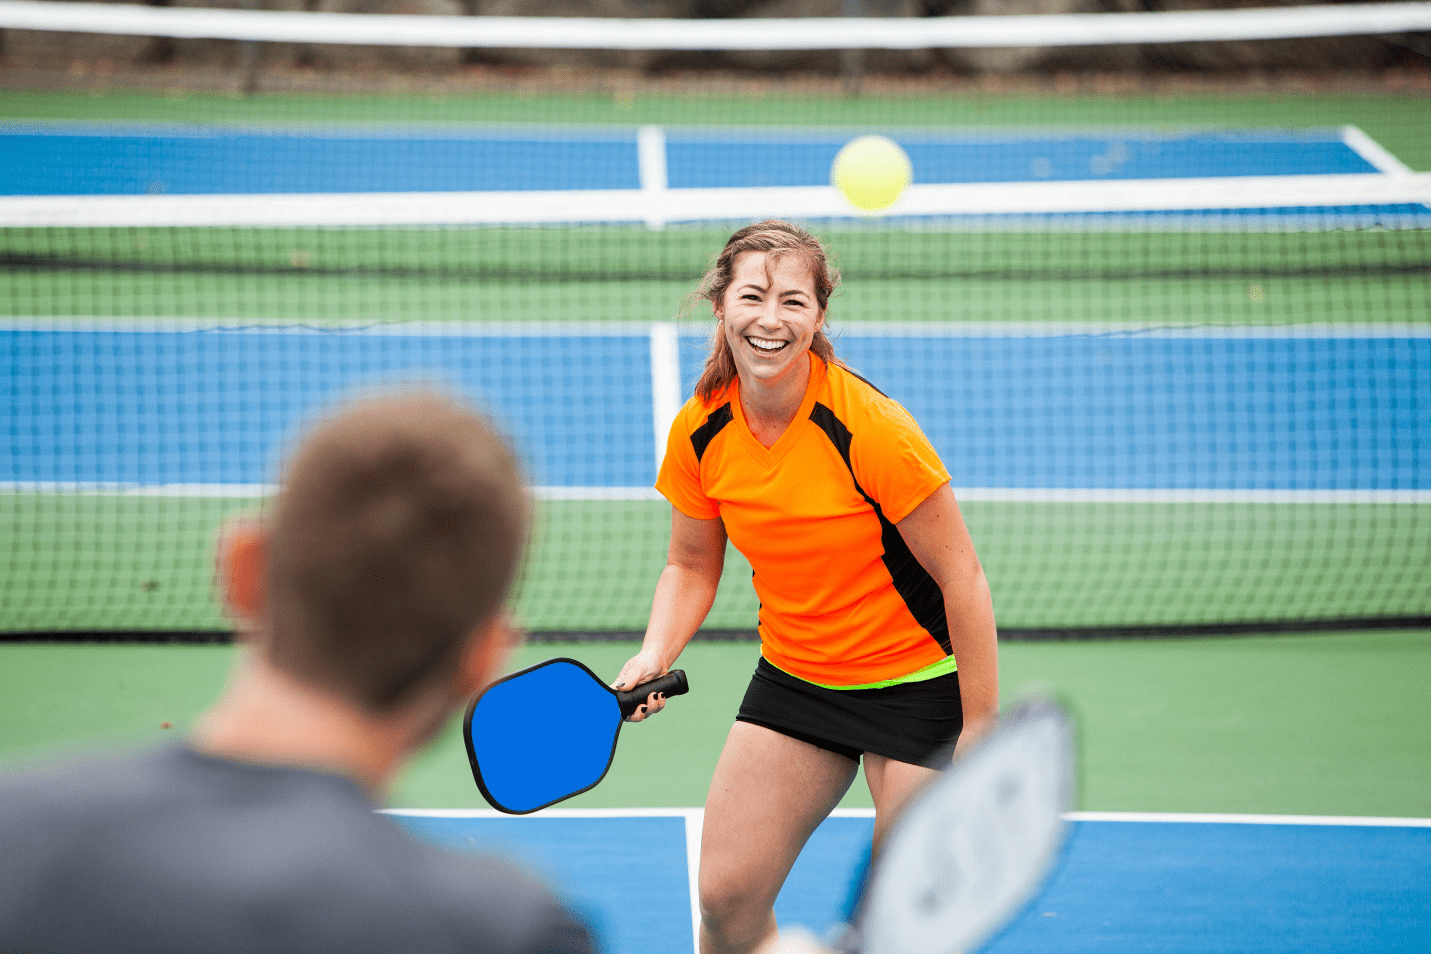 woman smiling and getting a match in a custom tennis court by Courts and greens in Bakersfield